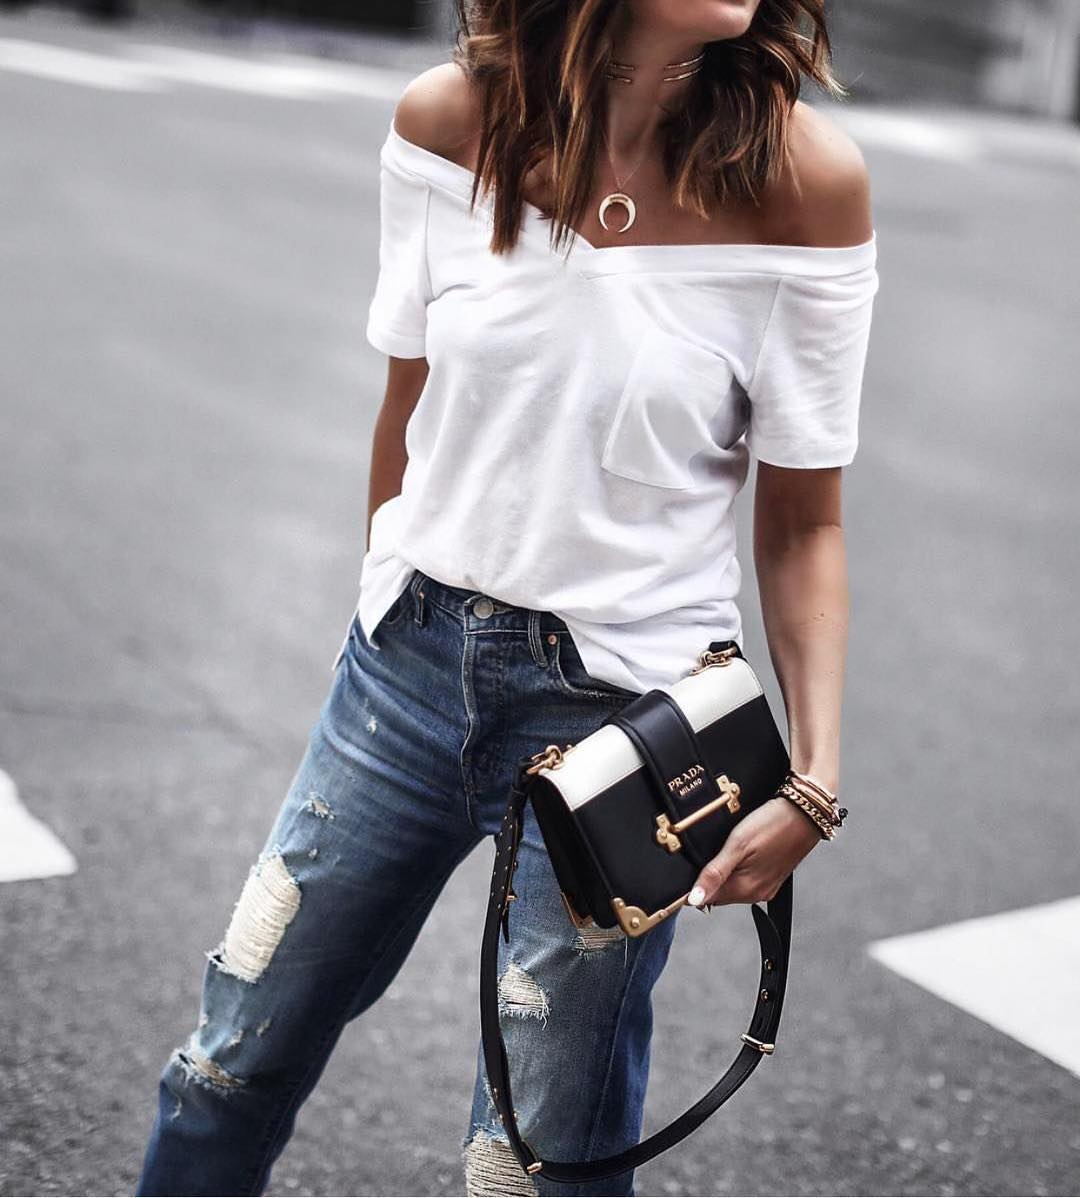 Off Shoulder White Top And Ripped Jeans For Casual Summer 2021